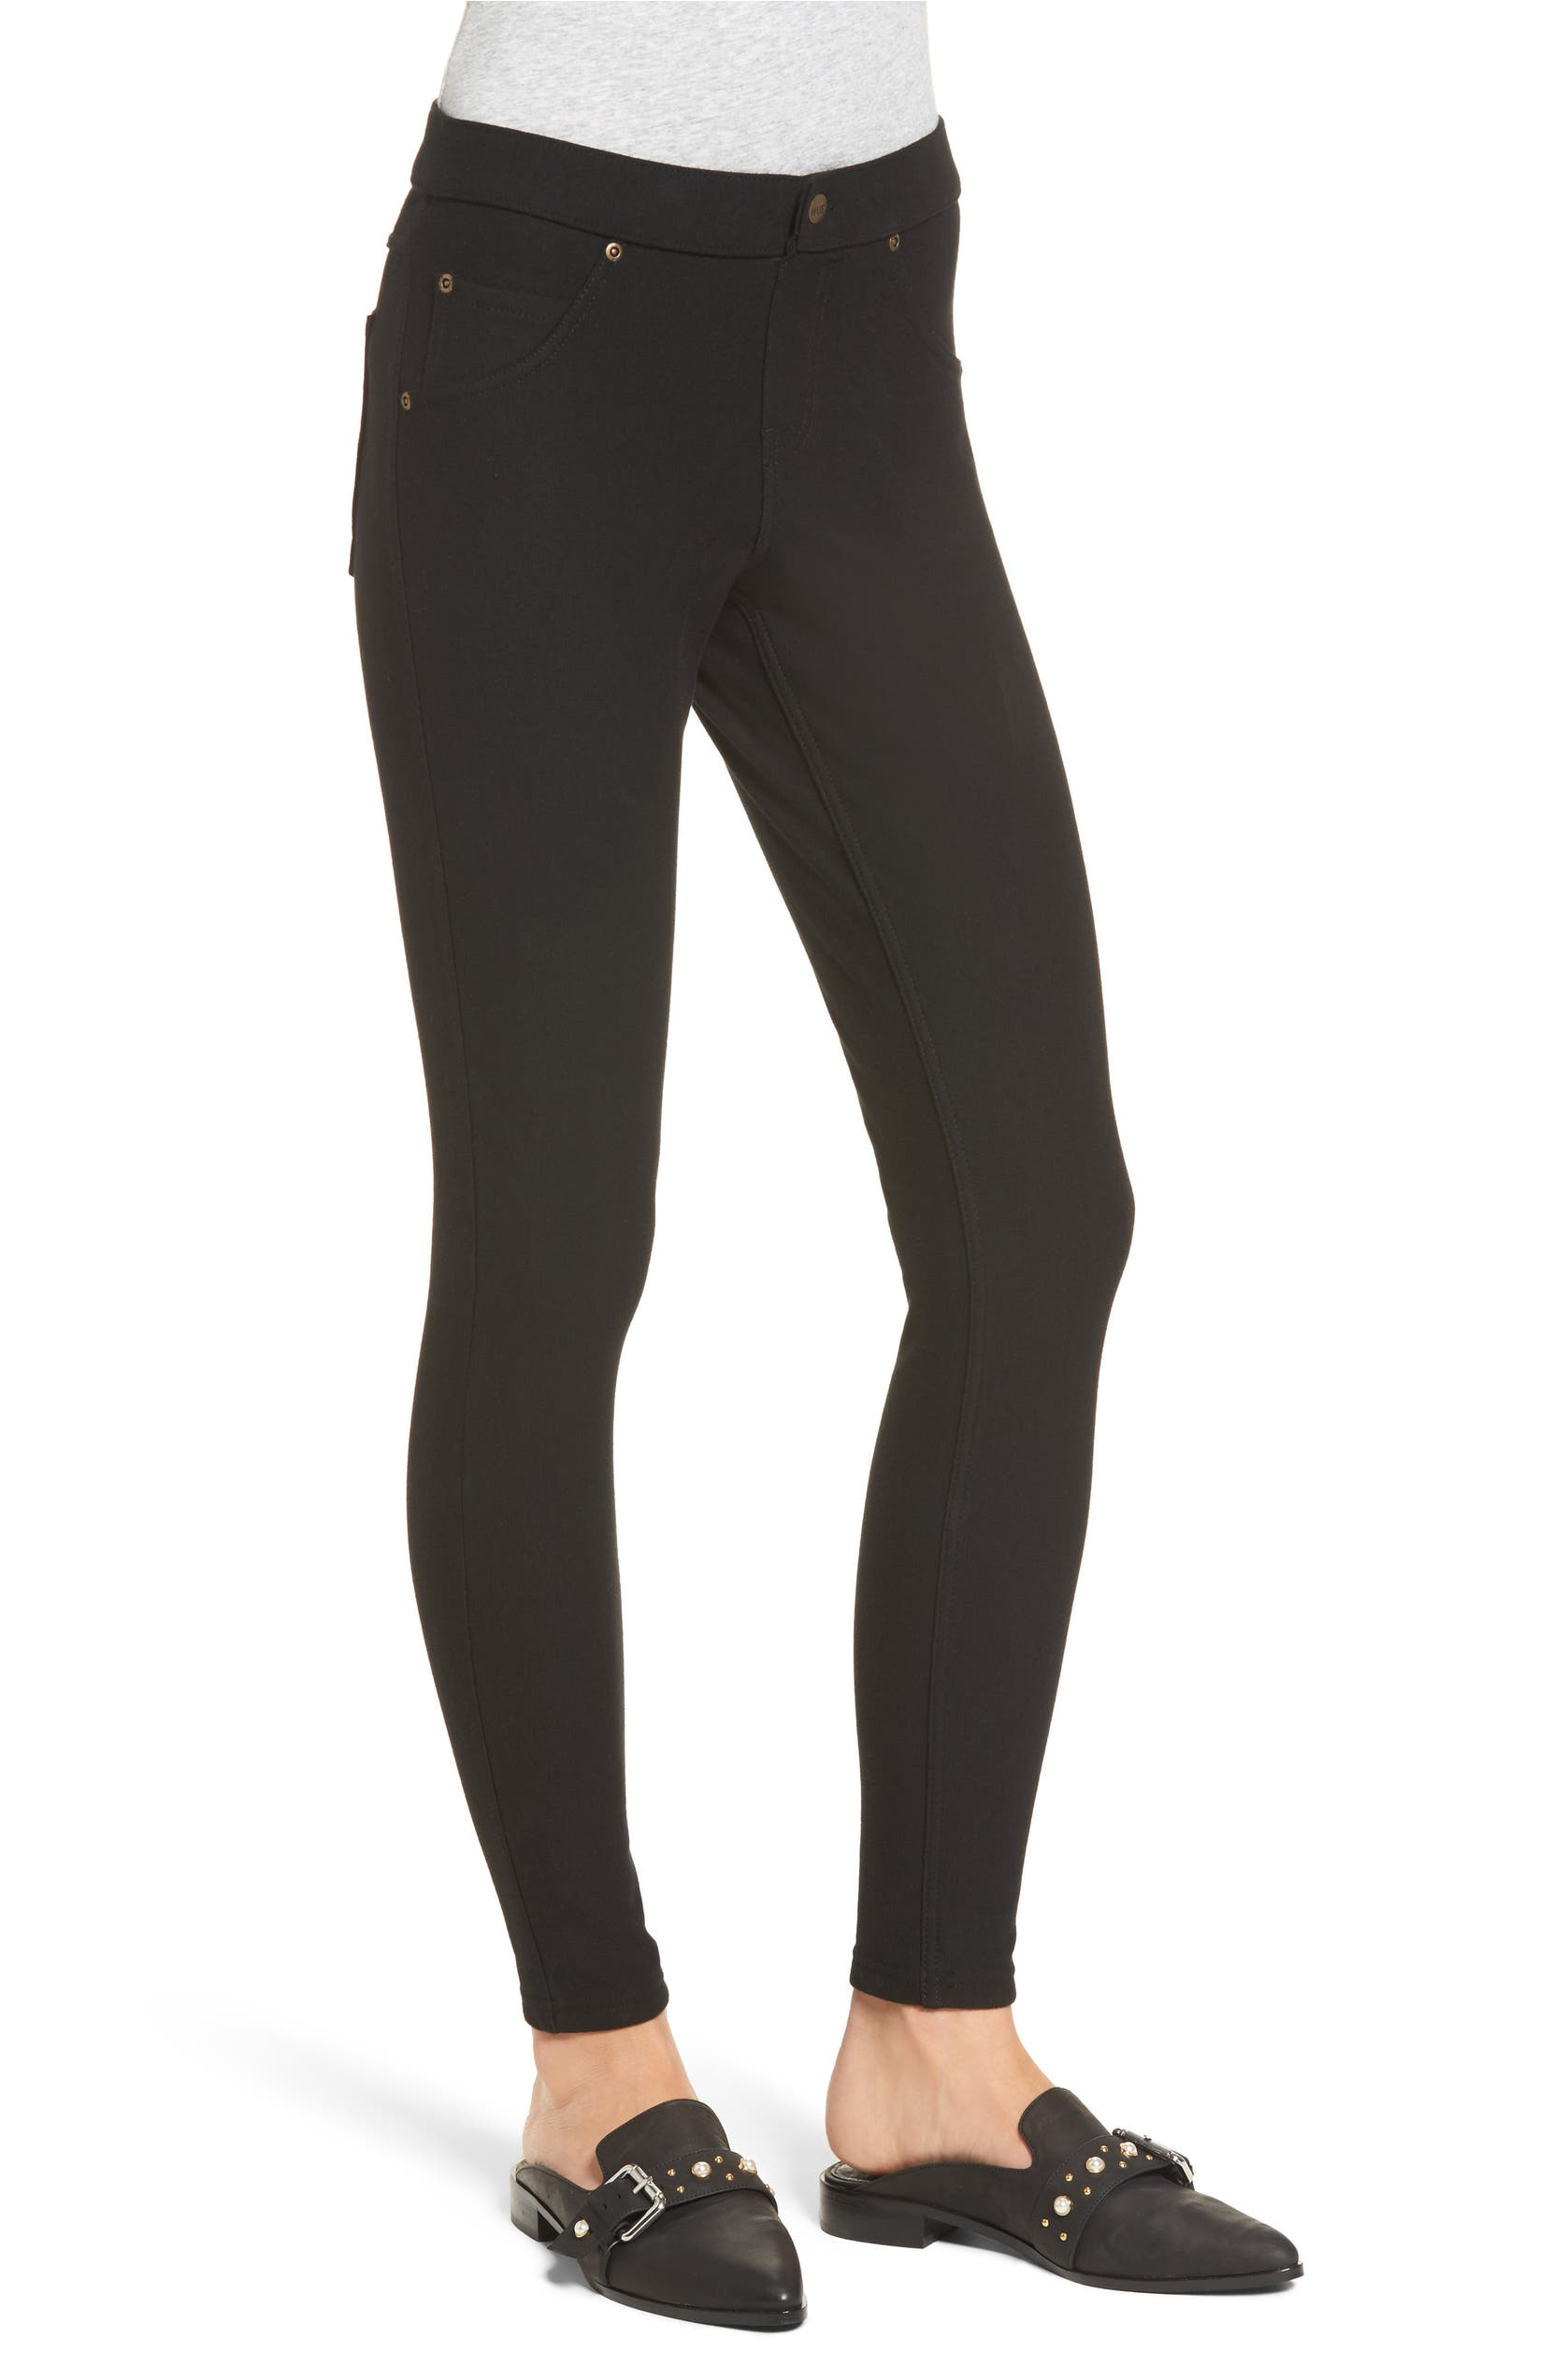 b8e49e7a889364 Hue Fleece Lined Leggings | Nordstrom